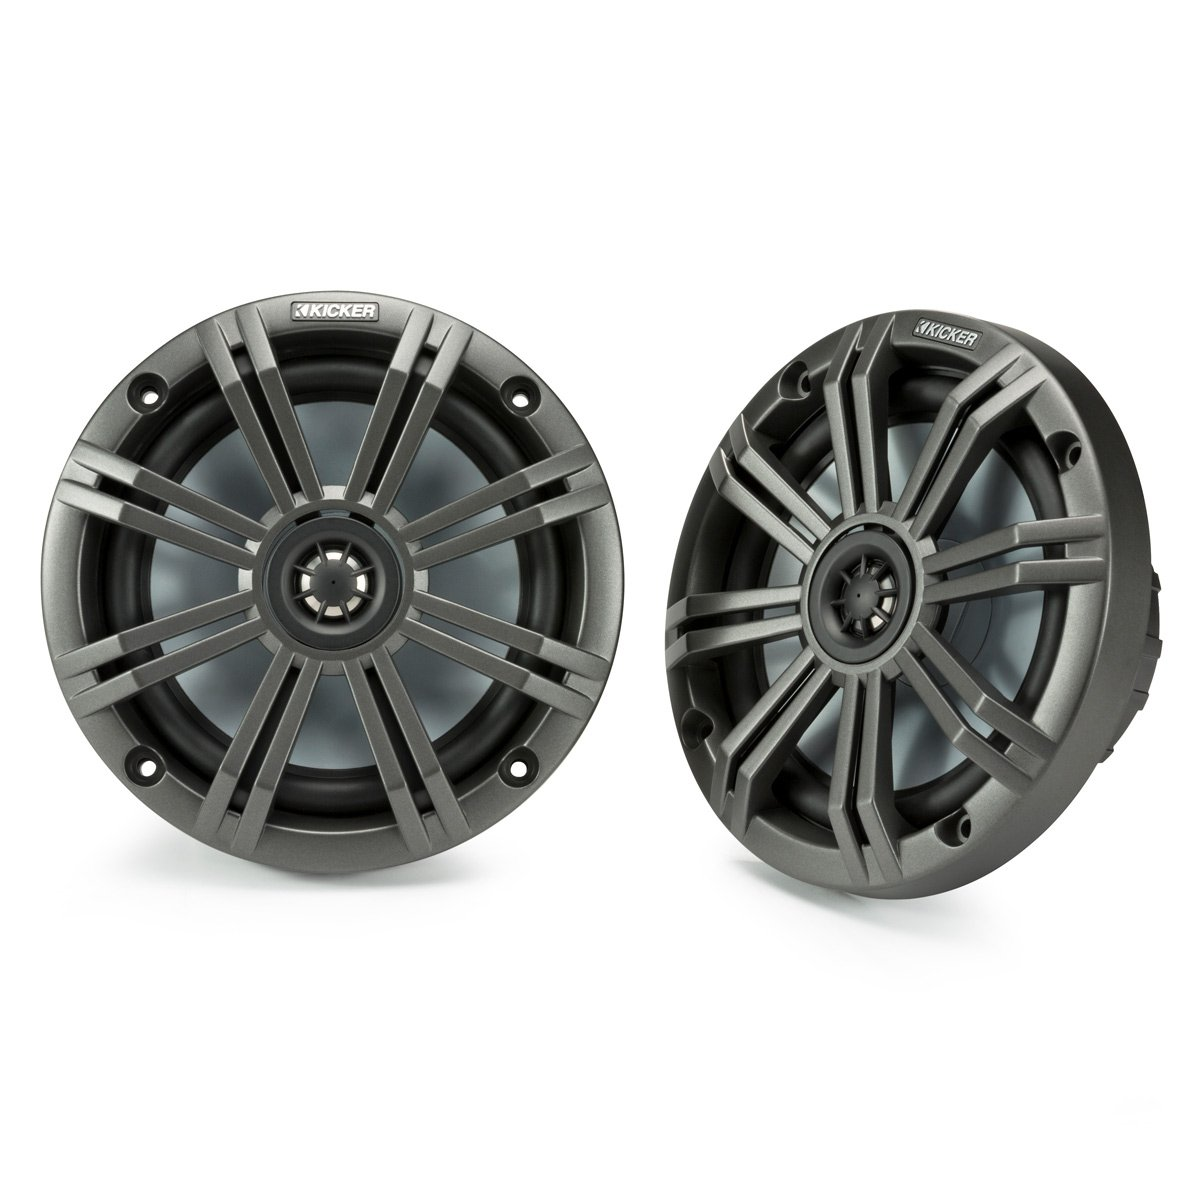 Kicker KM65 6.5-Inch (165mm) Marine Coaxial Speakers with 3/4-Inch (20mm) Tweeters, 4-Ohm, Charcoal and White Grilles by KICKER